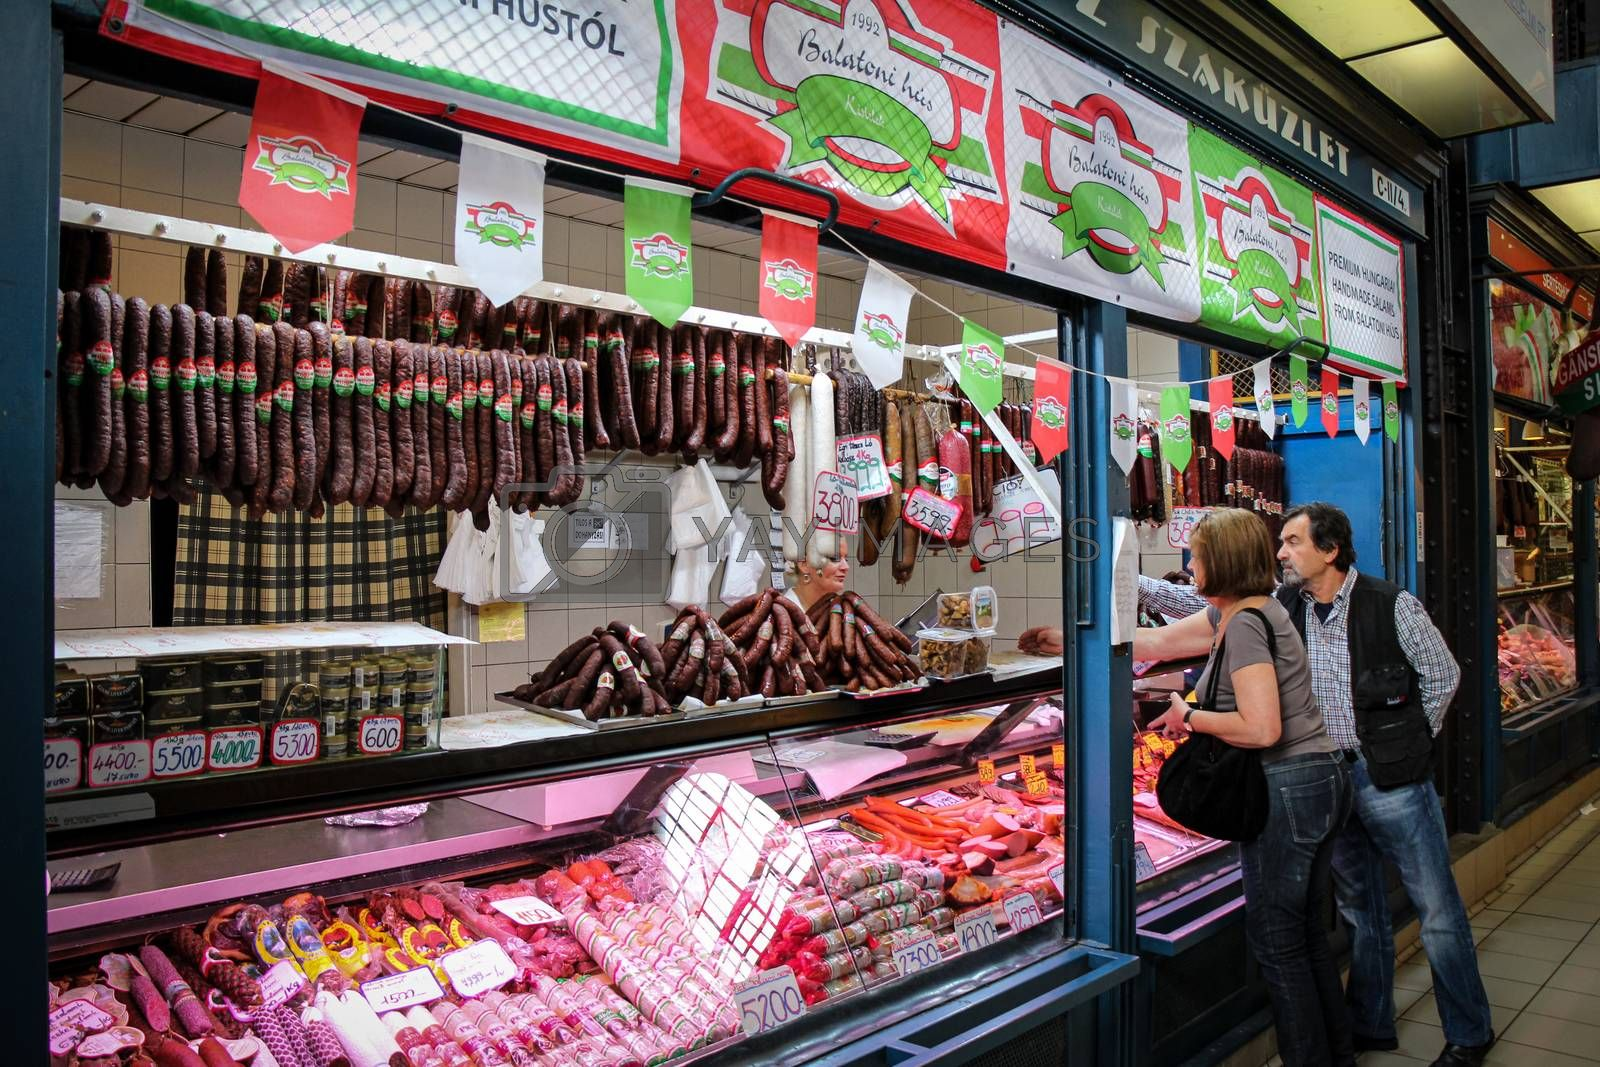 Budapest, Hungary - June 28th 2013: A delicatessen selling meat products in the Central Market in Budapest, Hungary